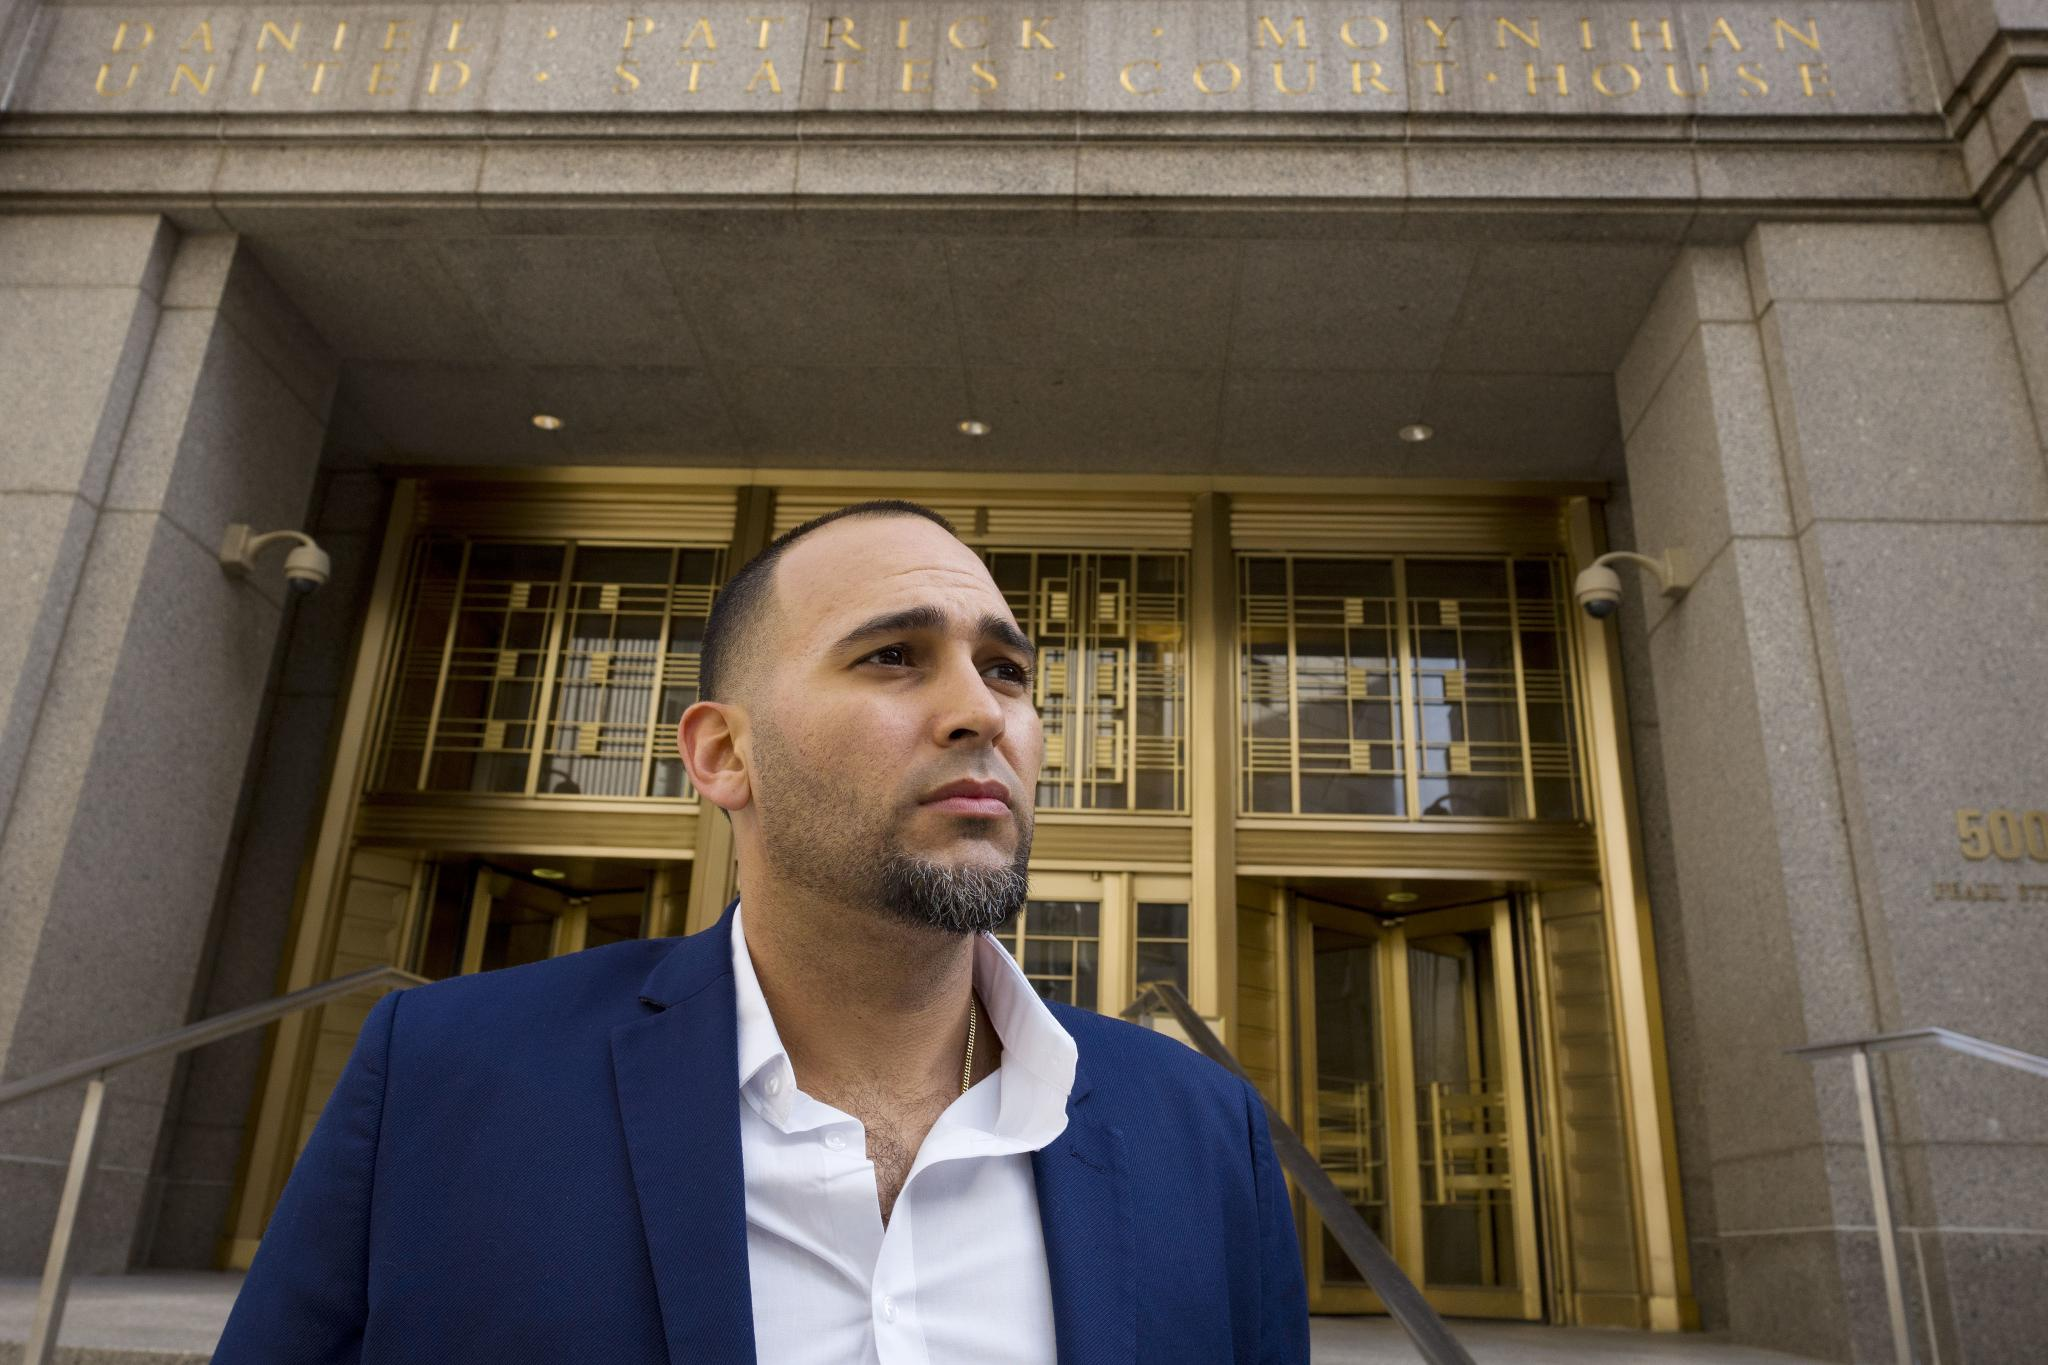 Iraq war veteran Jose Belen, who takes marijuana to treat post-traumatic stress disorder, poses in front of federal court on Tuesday, Feb. 13, 2018, in New York.(Credit: AP Photo/Mark Lennihan)